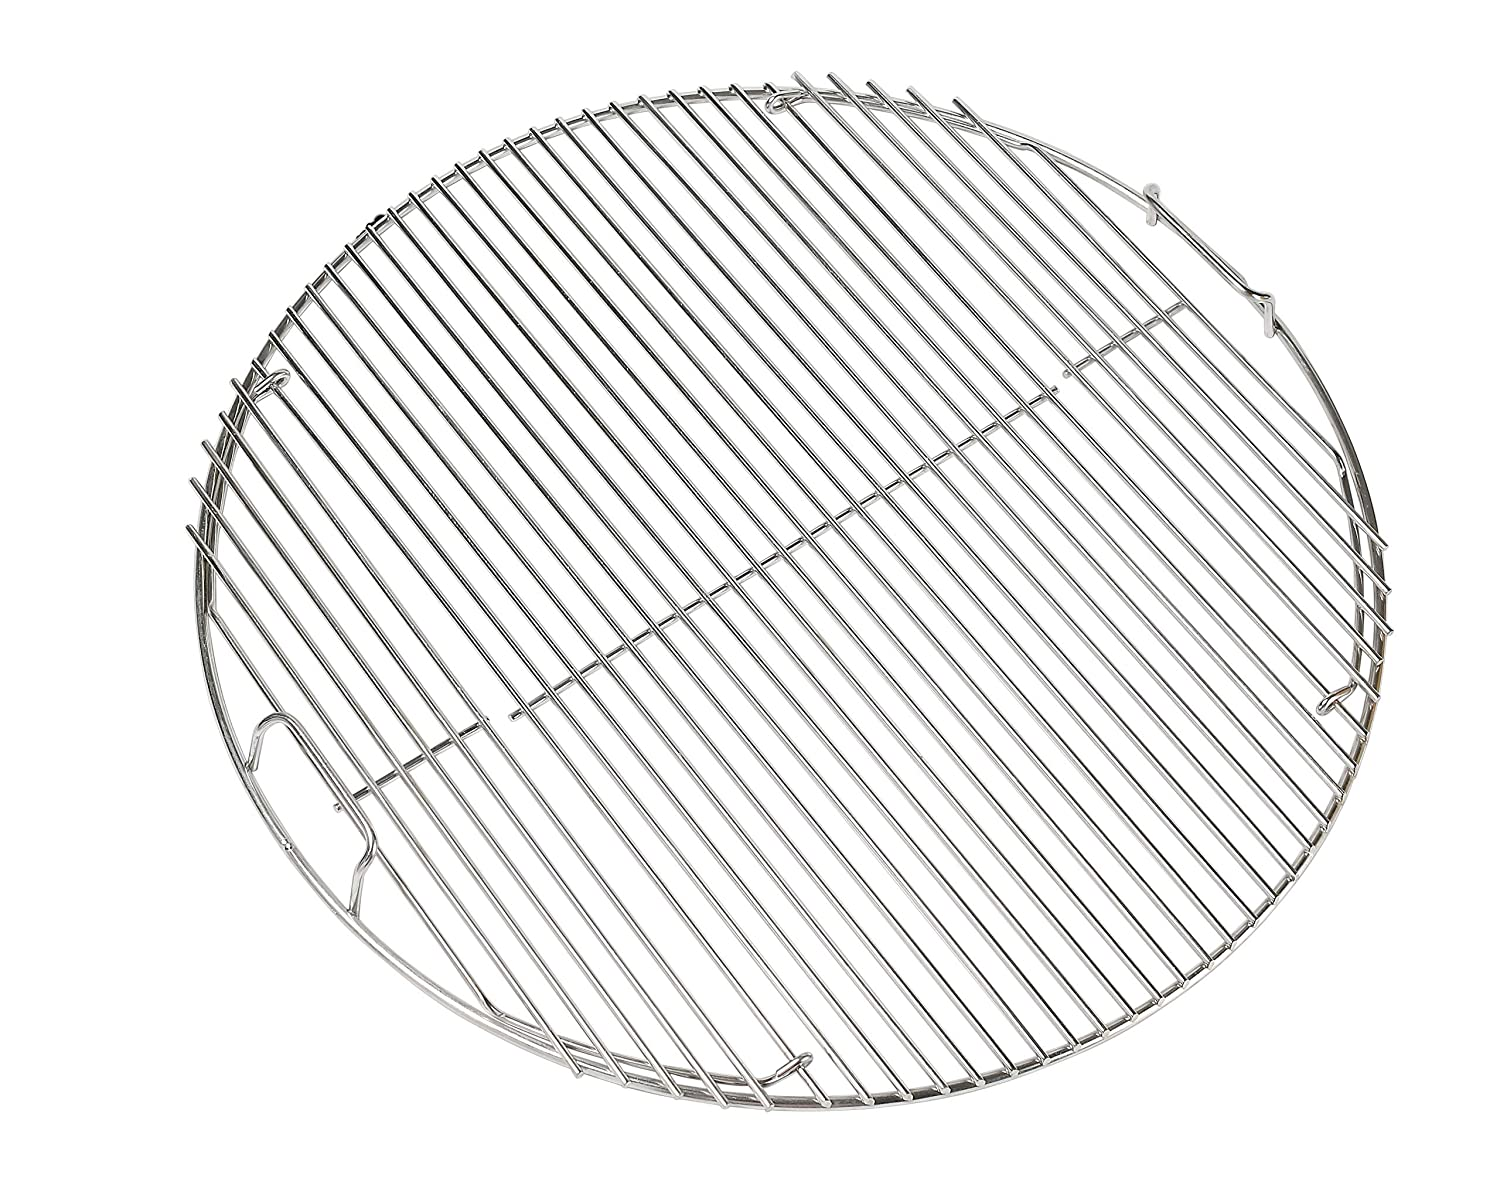 304 Stainless Steel Hinged Cooking Grate for 22.5 inch Weber Charcoal Grills